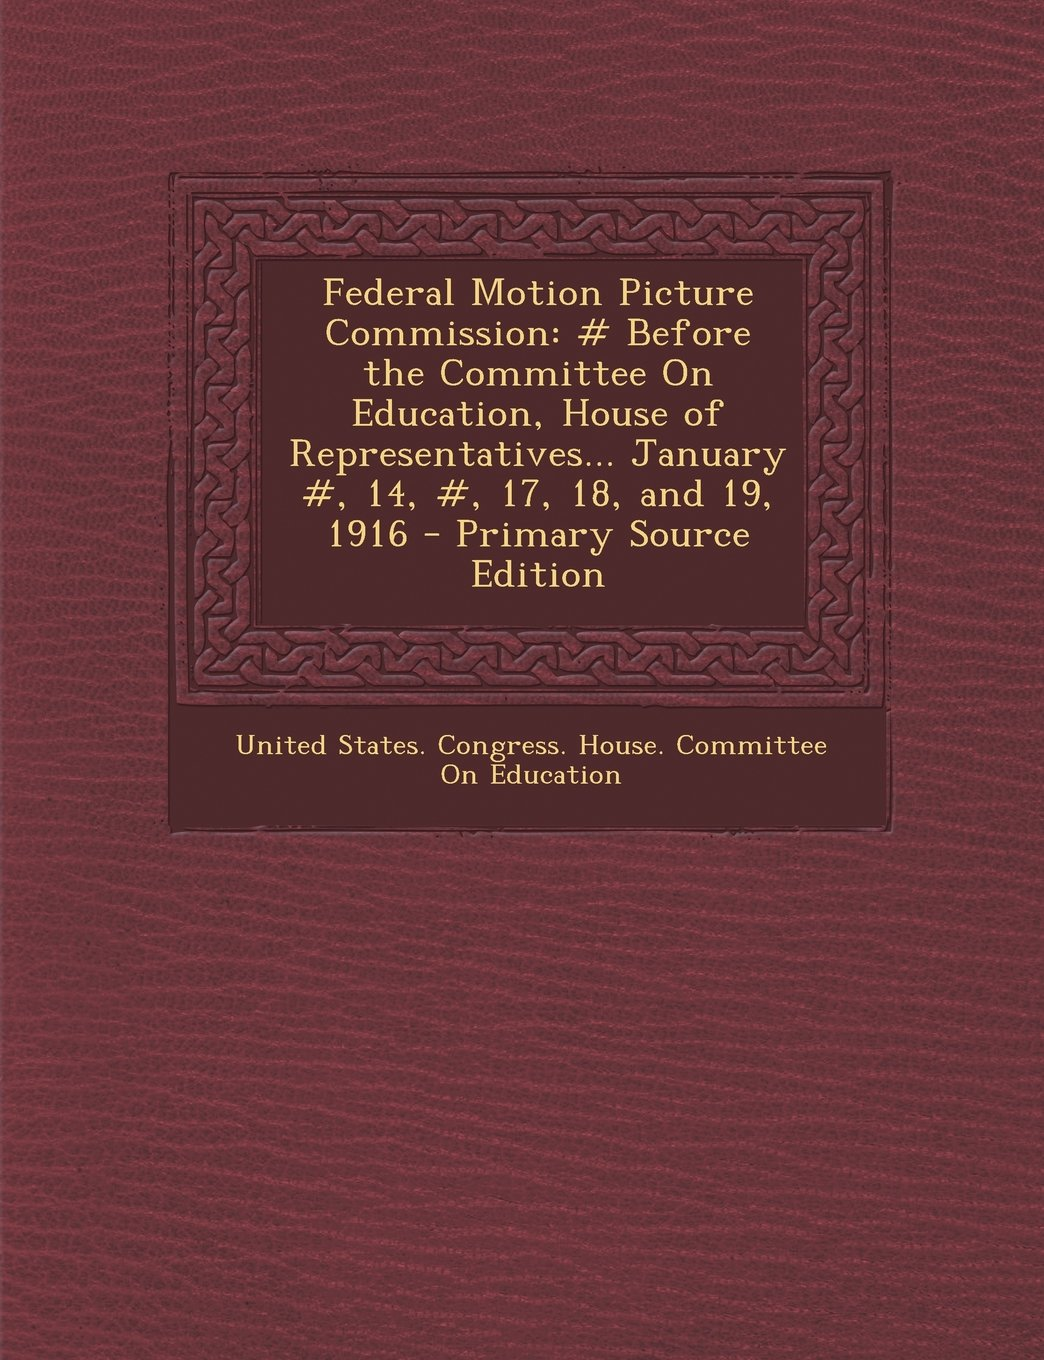 Federal Motion Picture Commission: # Before the Committee On Education, House of Representatives... January #, 14, #, 17, 18, and 19, 1916 pdf epub